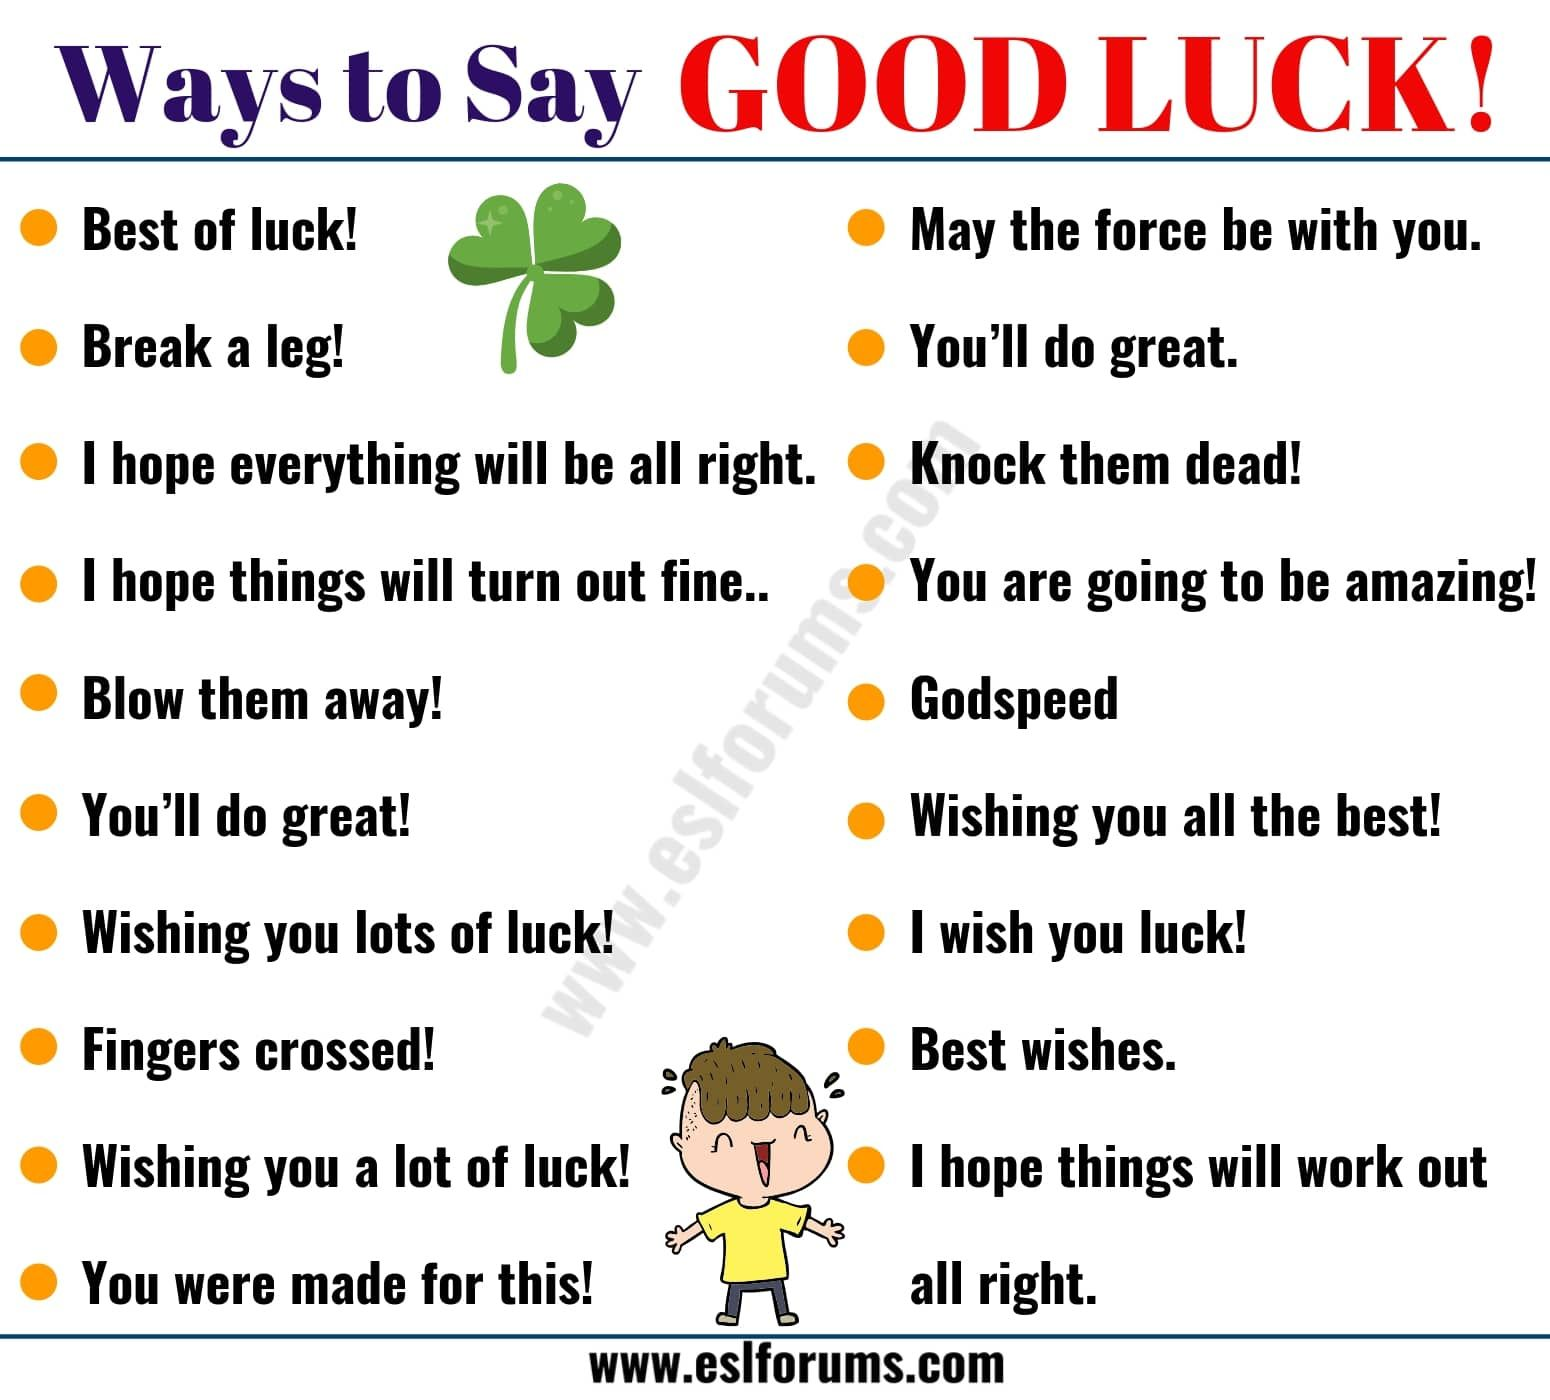 Good Luck Synonym 29 Power Way To Say Esl Forum Quote English Vocabulary Word Learn Paraphrase Definition Francais Francai